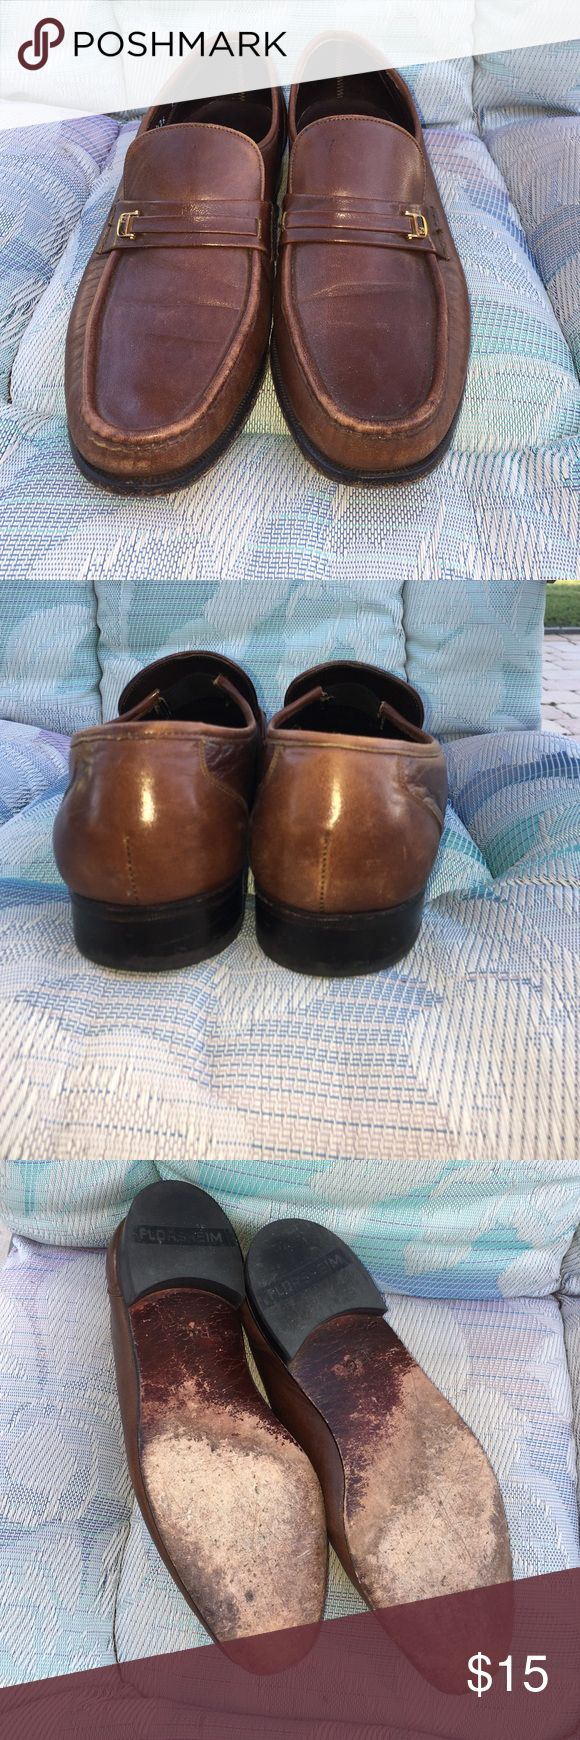 Mens Florsheim Loafers Leather uppers & soles. Rubber lined heels. Plenty of wear left. Size 9 1/2 C Florsheim Shoes Loafers & Slip-Ons